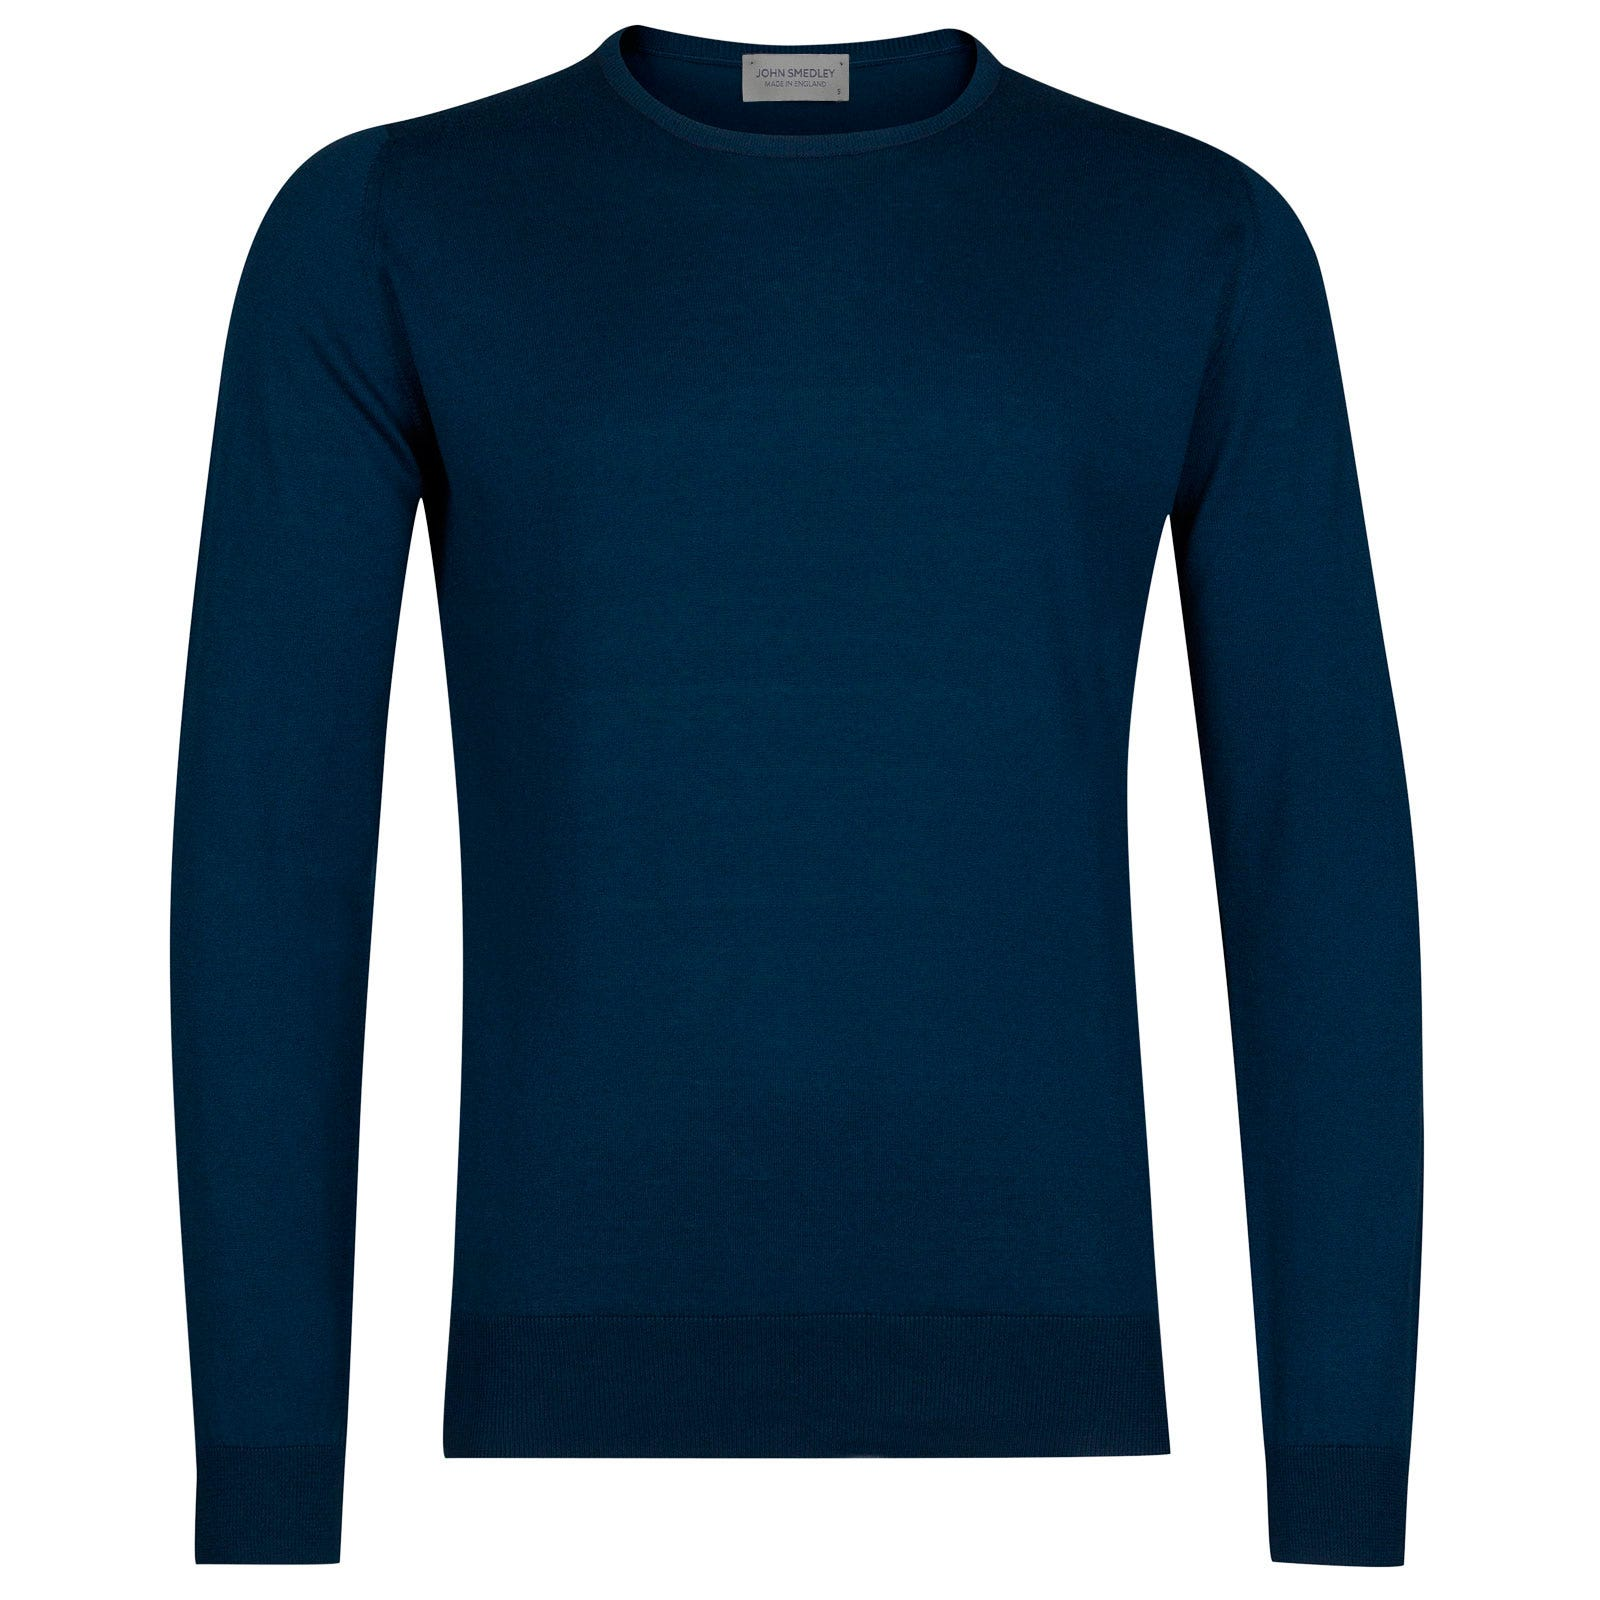 John Smedley hatfield Sea Island Cotton Pullover in Indigo-XL